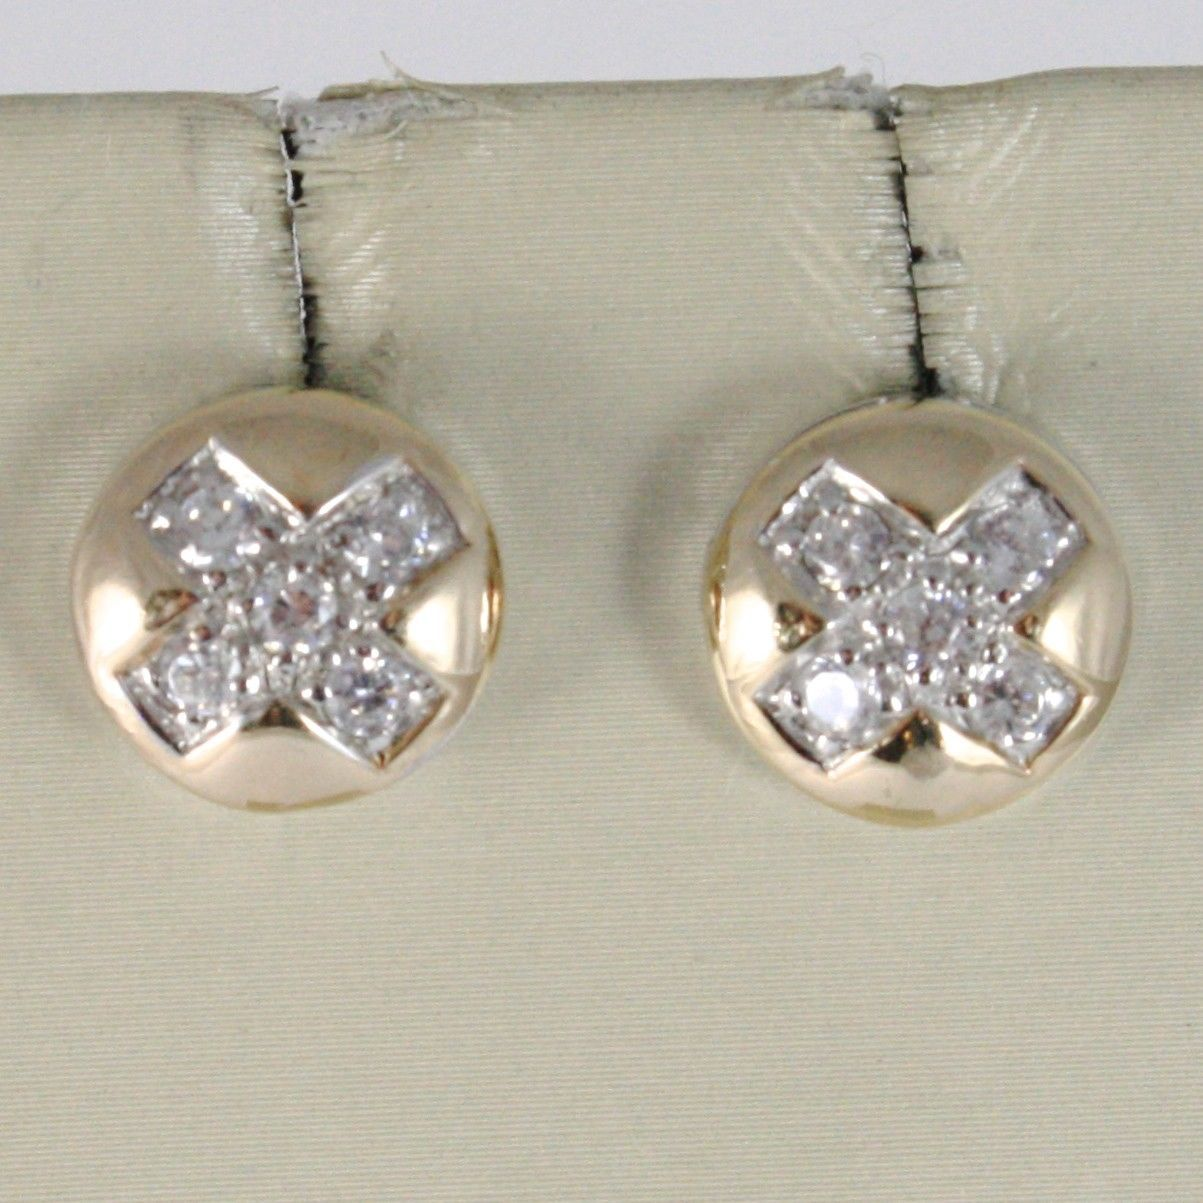 SOLID 925 STERLING ROSE SILVER EARRINGS BUTTON WITH CUBIC ZIRCONIA ROUND CUT